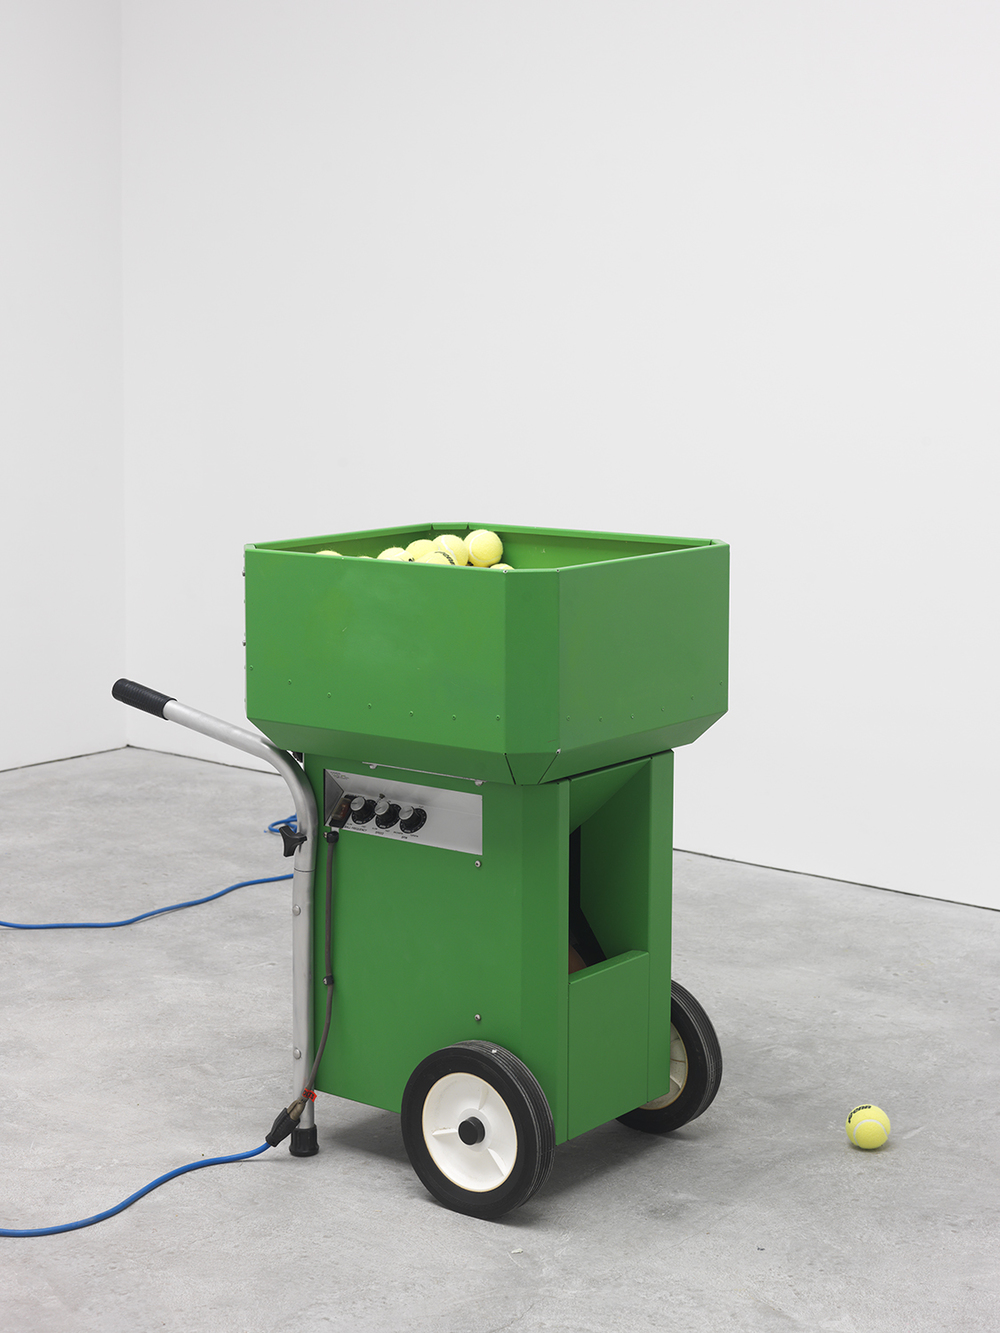 Chant, 2015 Tennis ball machine, tennis balls and man Dimensions variable